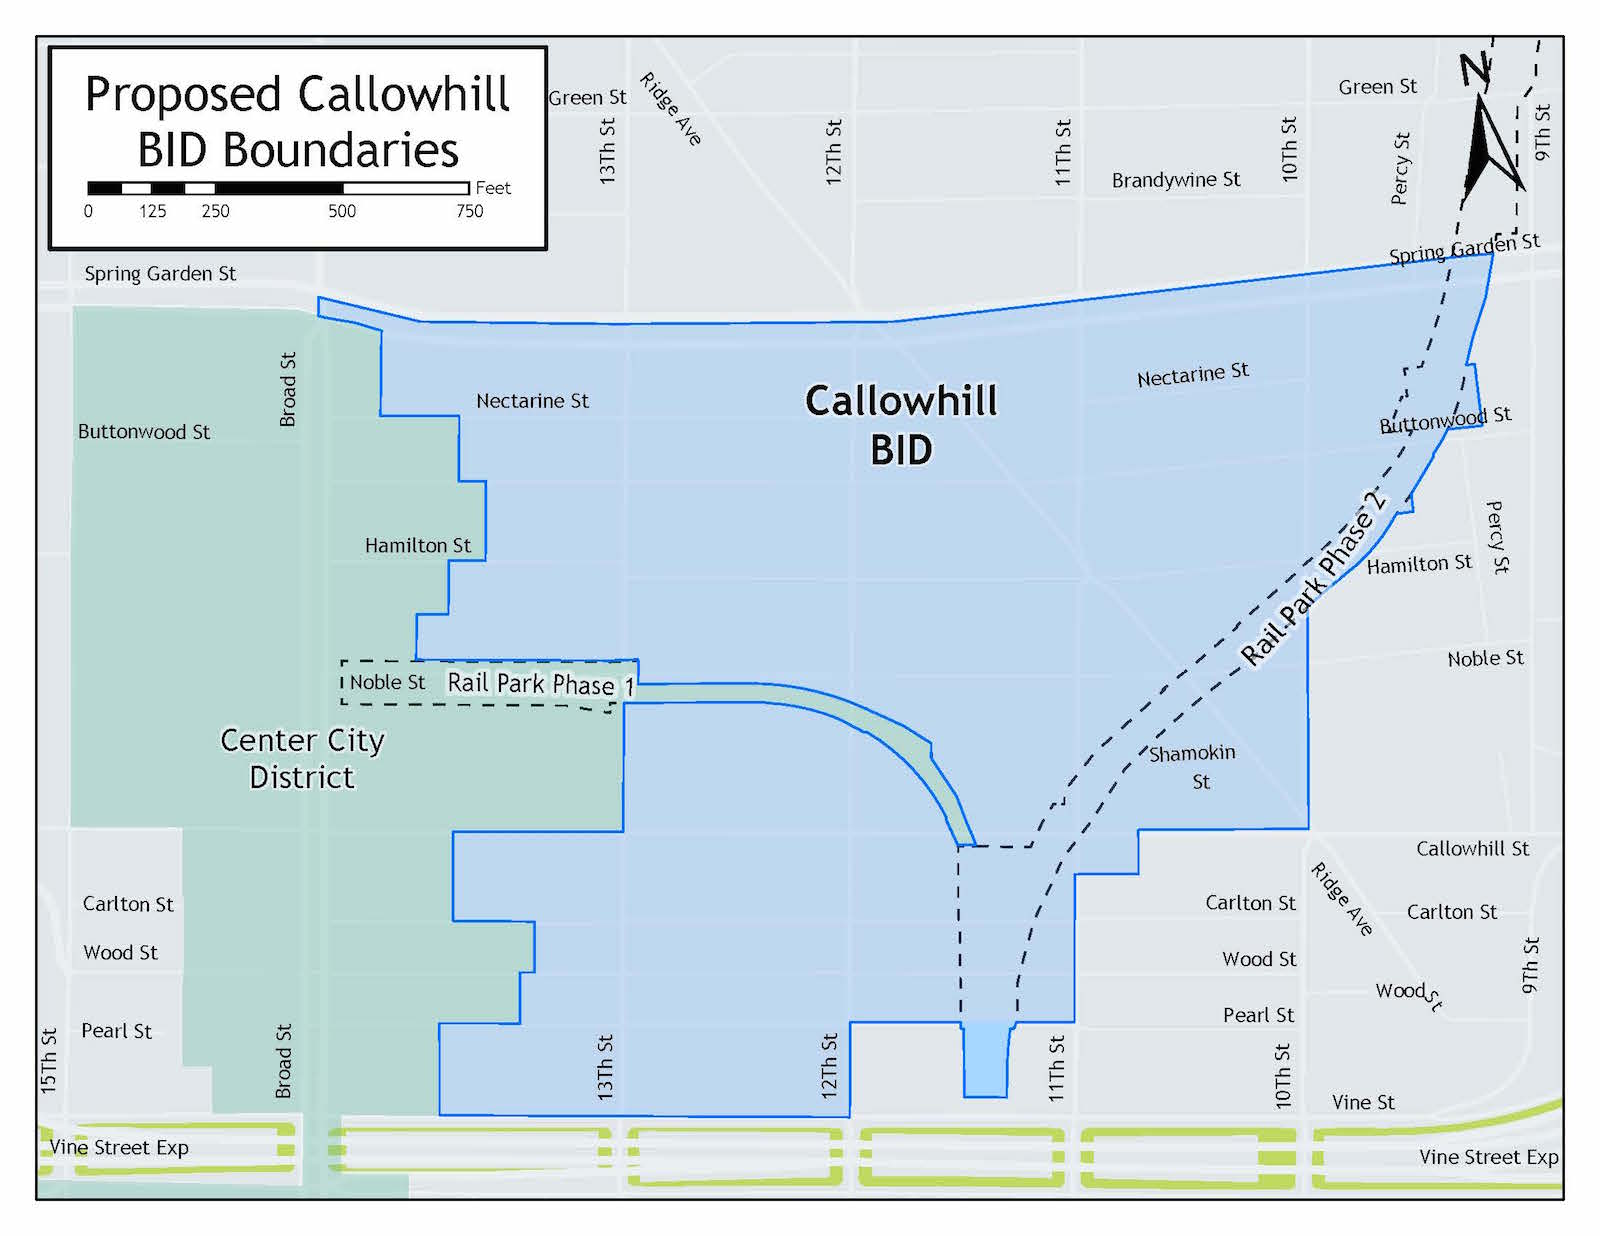 CALLOWHILL BID SERVICE AREA - The boundaries, also referred to as the service area, of the Callowhill BID is generally bounded by the south side of Spring Garden Street between the Rail Park and the back of the properties on the east side of North Broad Street on the northern side; the west side of the streets immediately to the east of the Rail Park on the east side; the north side of Vine Street between approximately 11th Street and the back of the properties on the east side of North Broad Street on the south side; and the back of the properties on the east side of North Broad Street between Spring Garden and Vine Streets on the west side. Please see the adjacent map for more information.For a full list of all properties within the boundaries of the Callowhill BID, click here.